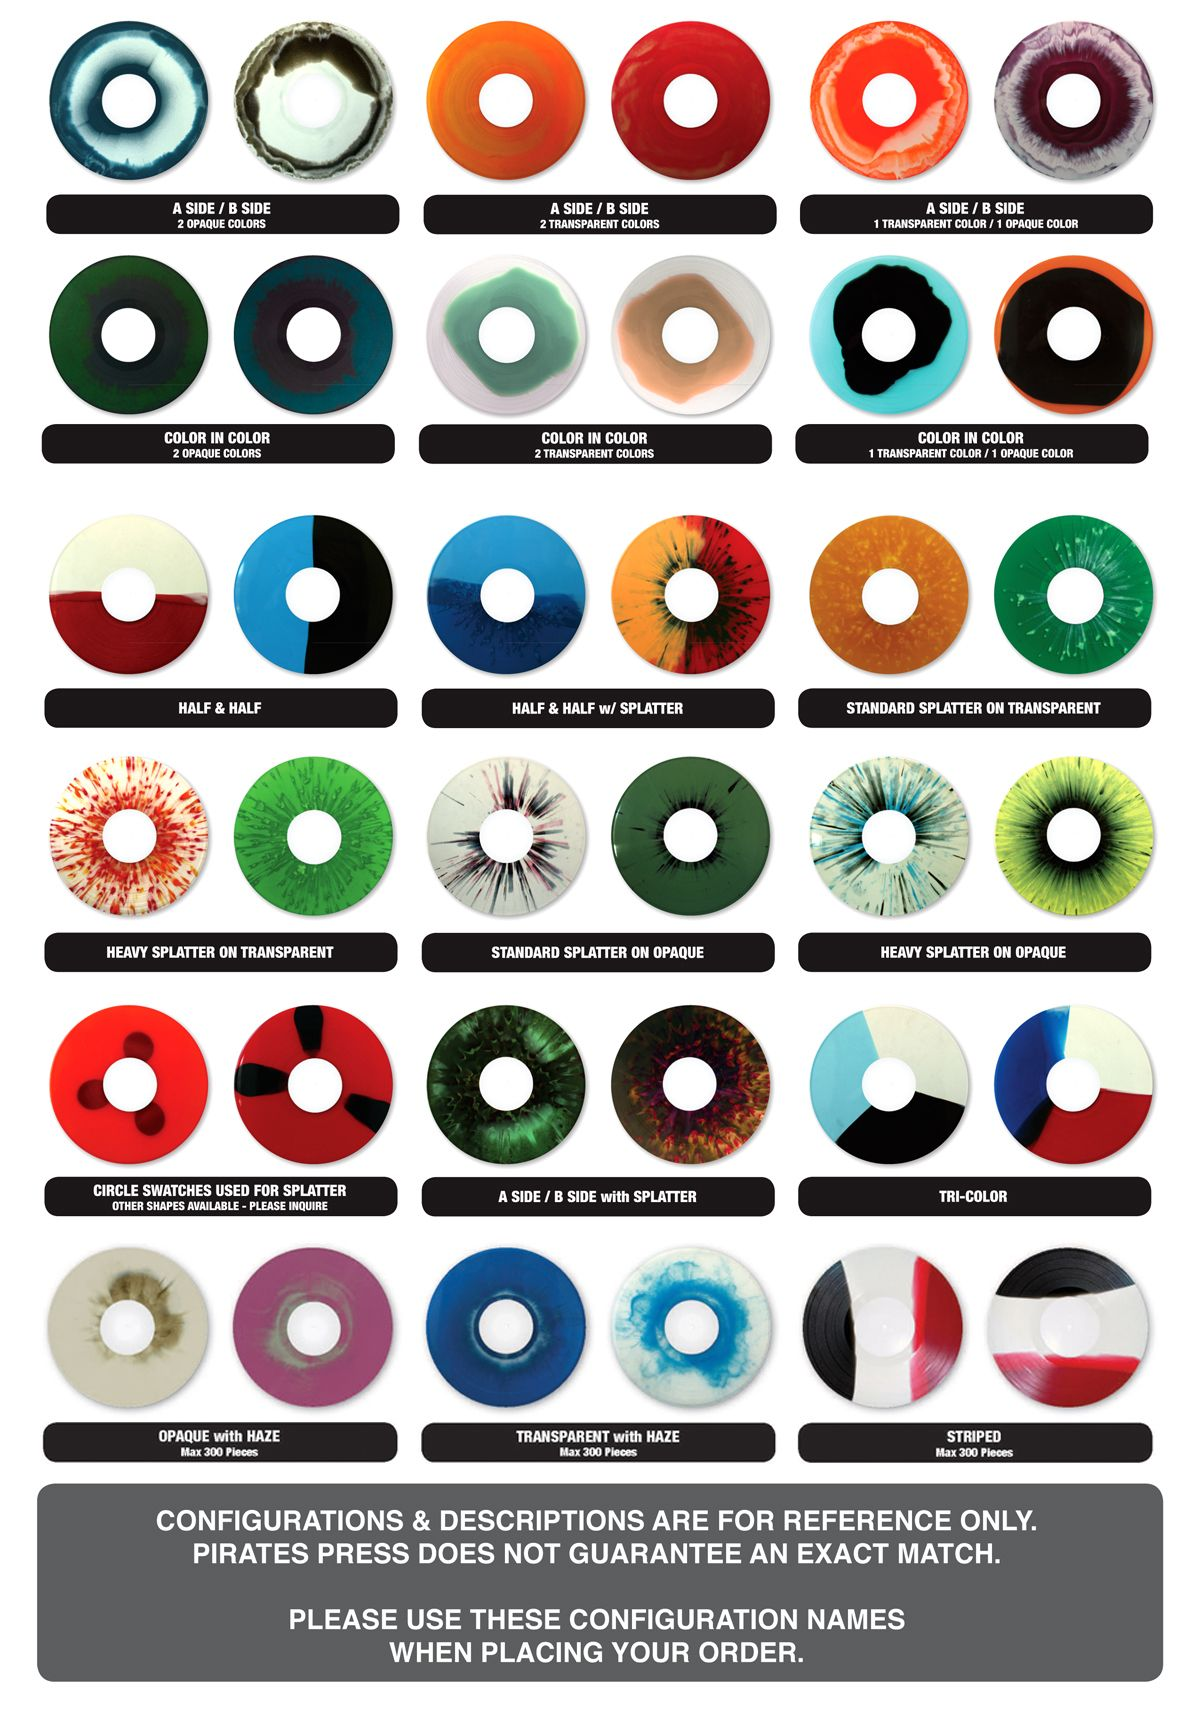 Some Great Coloring Options As Well If We D Like To Mix Colors Regardless They Are Fun To Look At Vinyl Records Music Vinyl Records Vinyl Record Collection